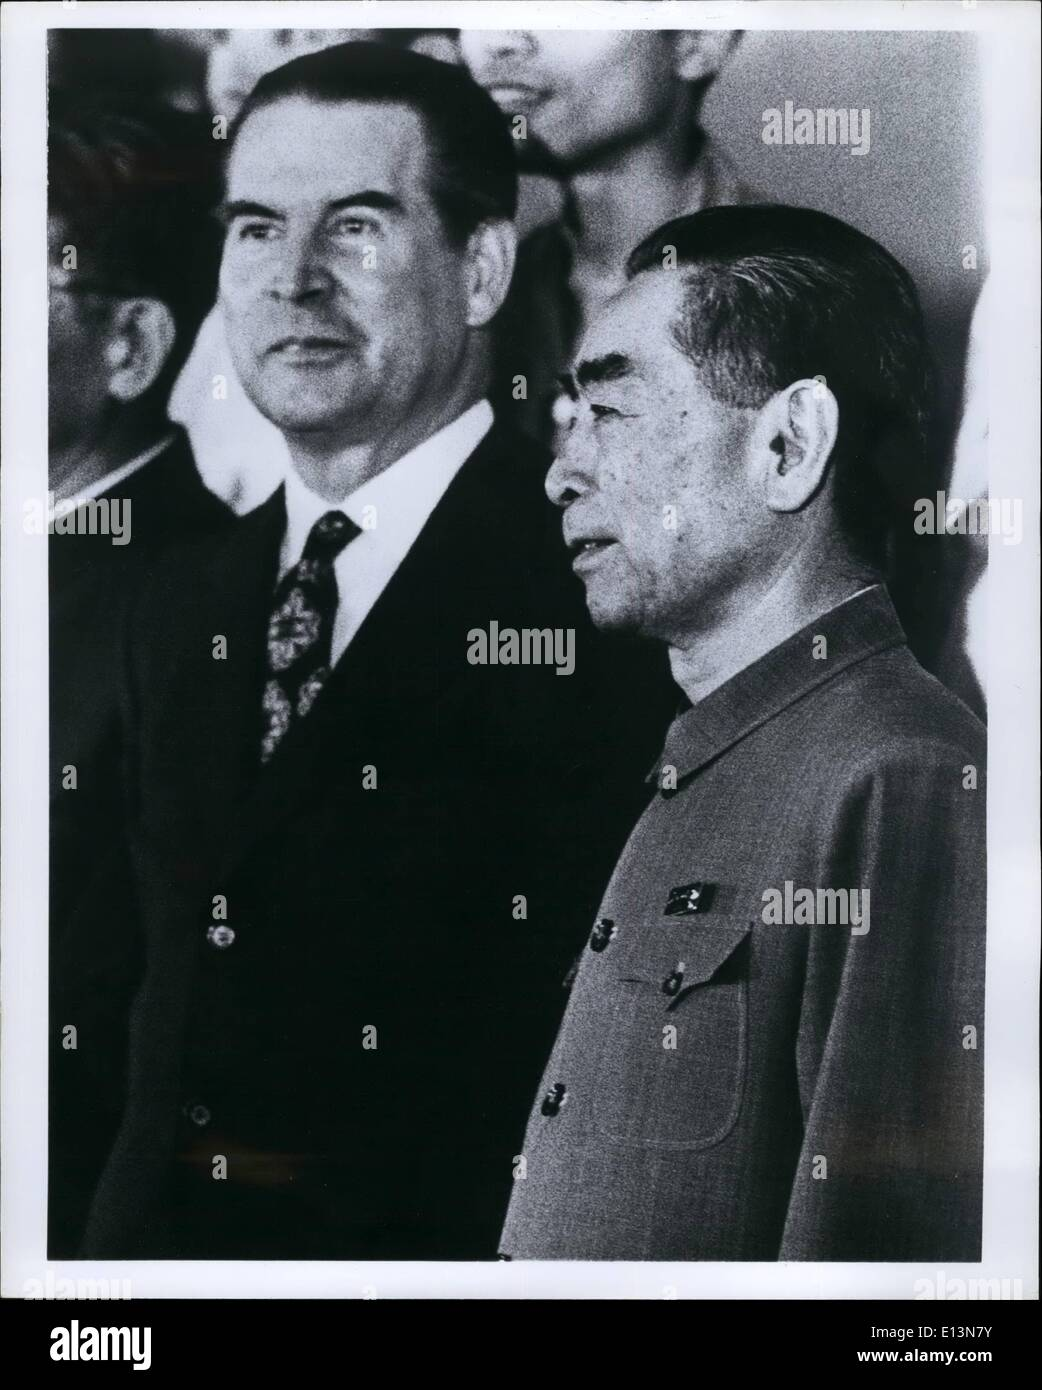 Mar. 22, 2012 - West German opposition leader Gerhard Schroder and Chinese Premier Chou En Peking 1972. - Stock Image